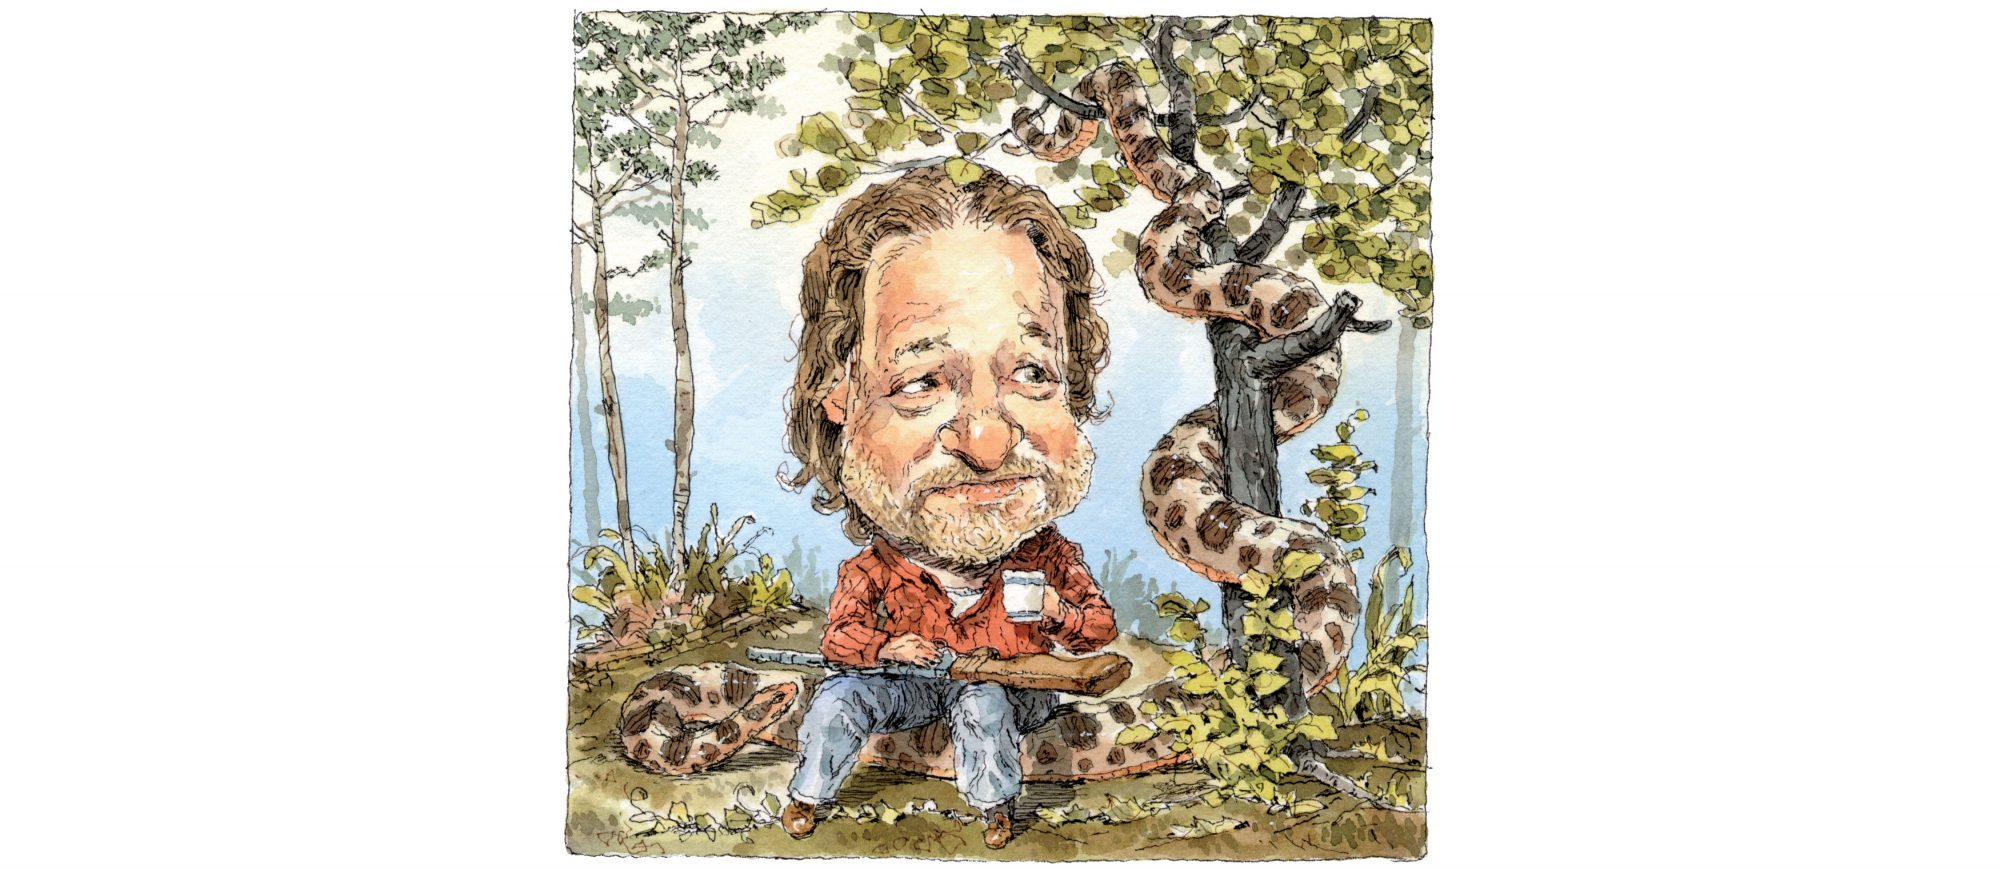 Rick Bragg with Snake